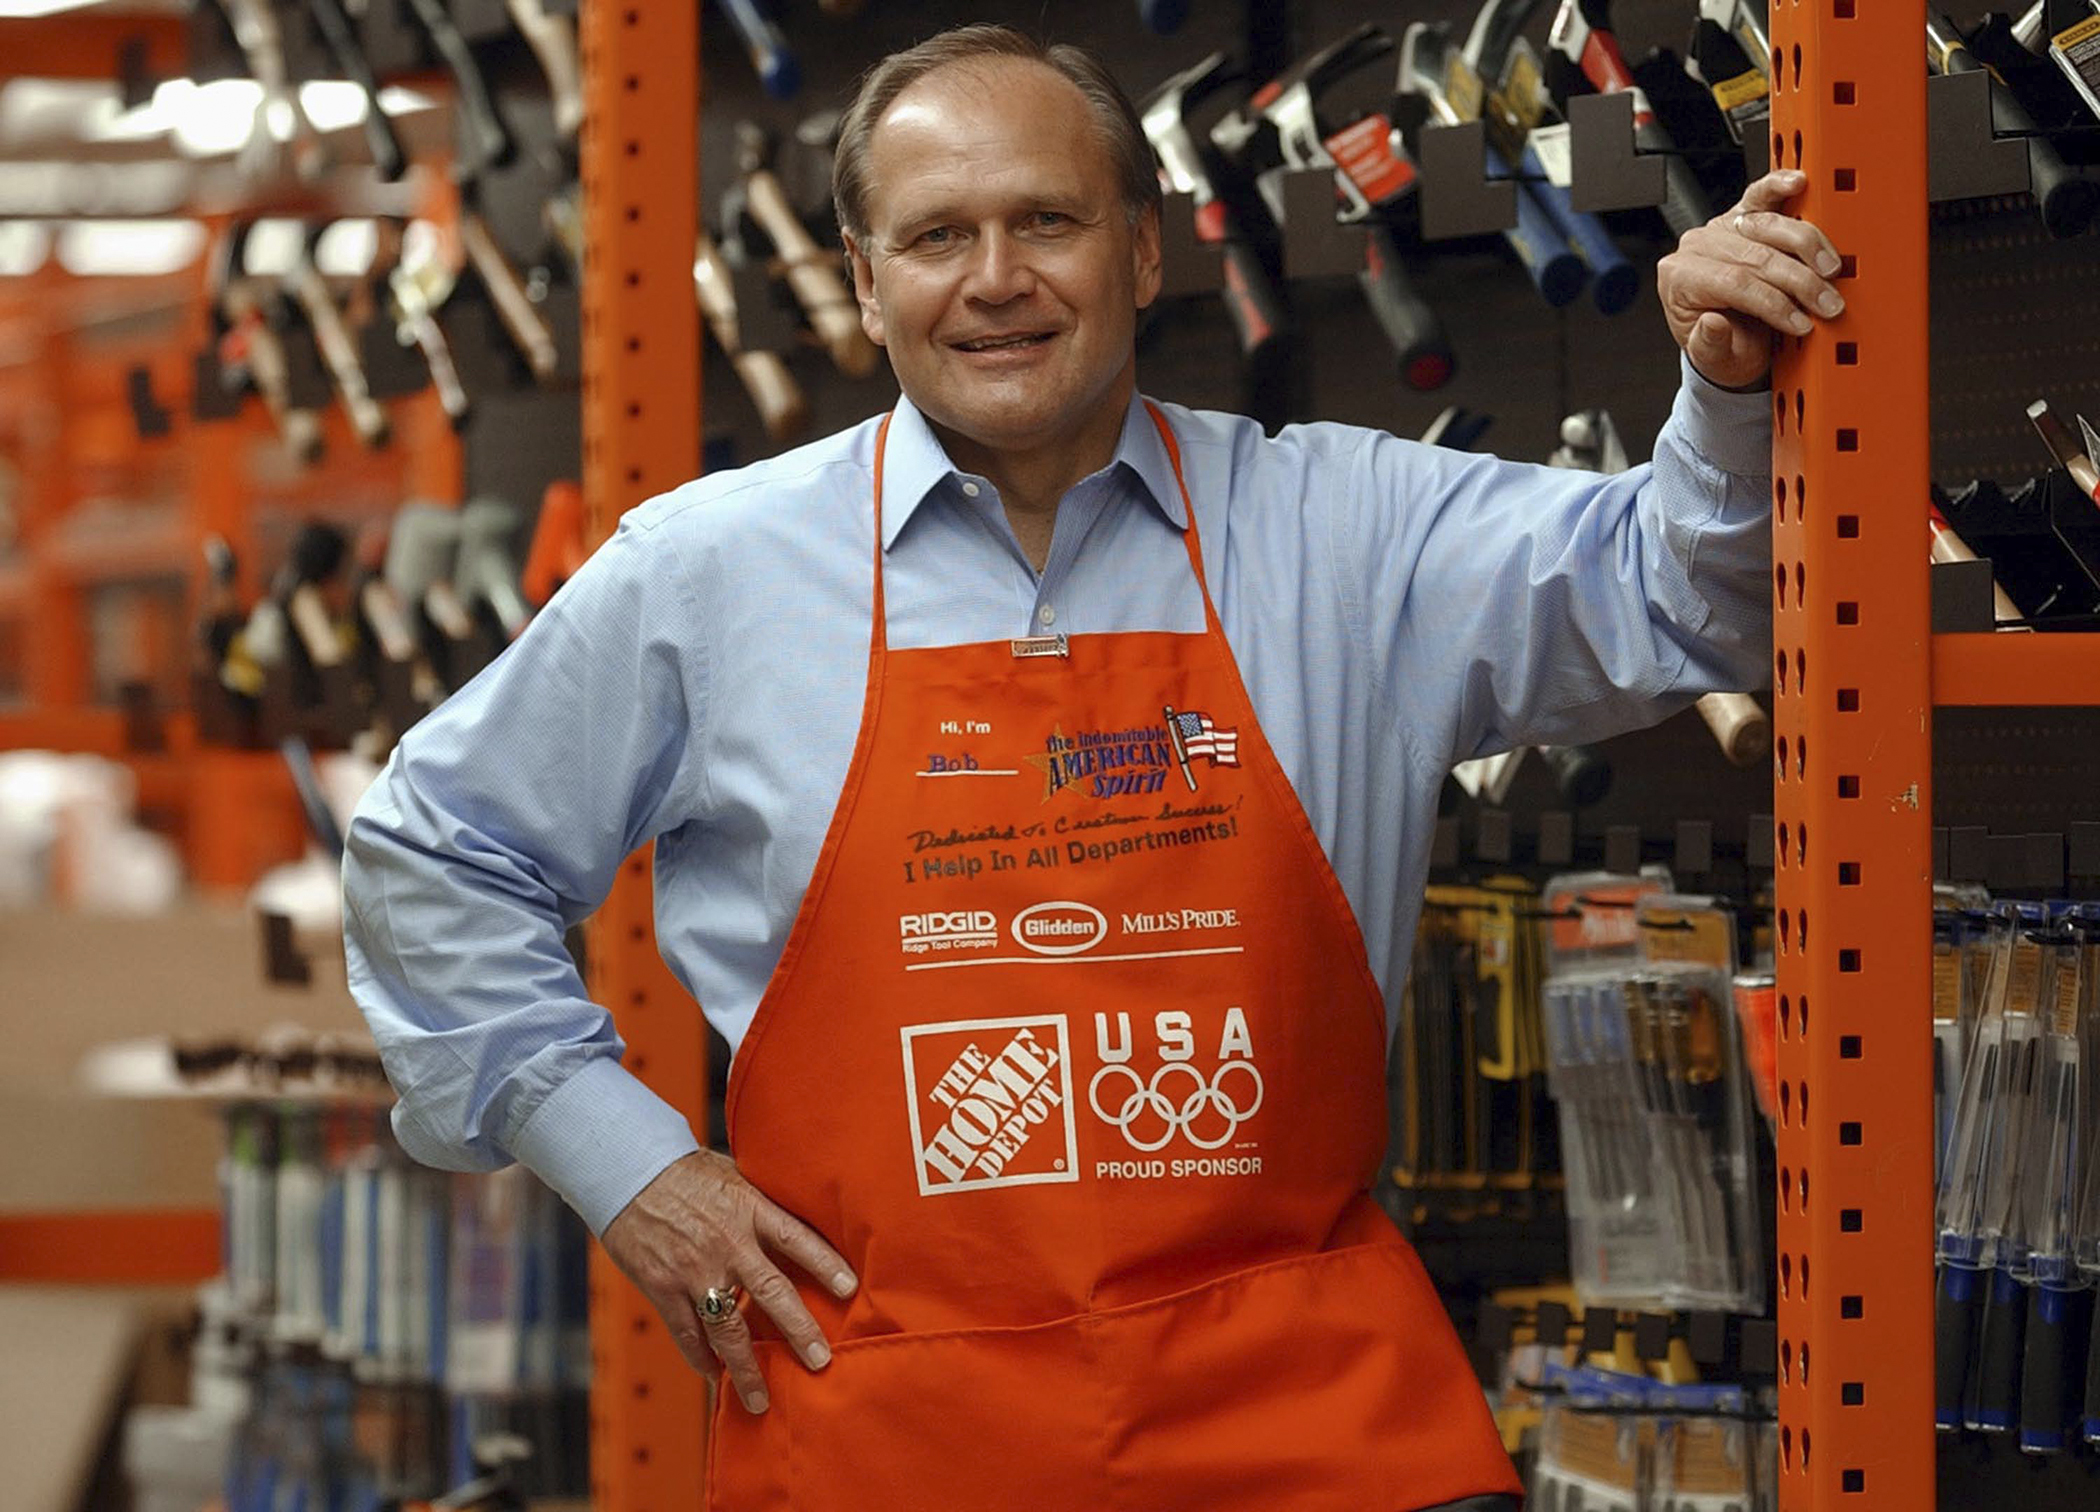 Robert L. Nardelli, chairman, president and CEO of The Home Depot stands at the company's training facility April 21, 2003 in Atlanta, Georgia.